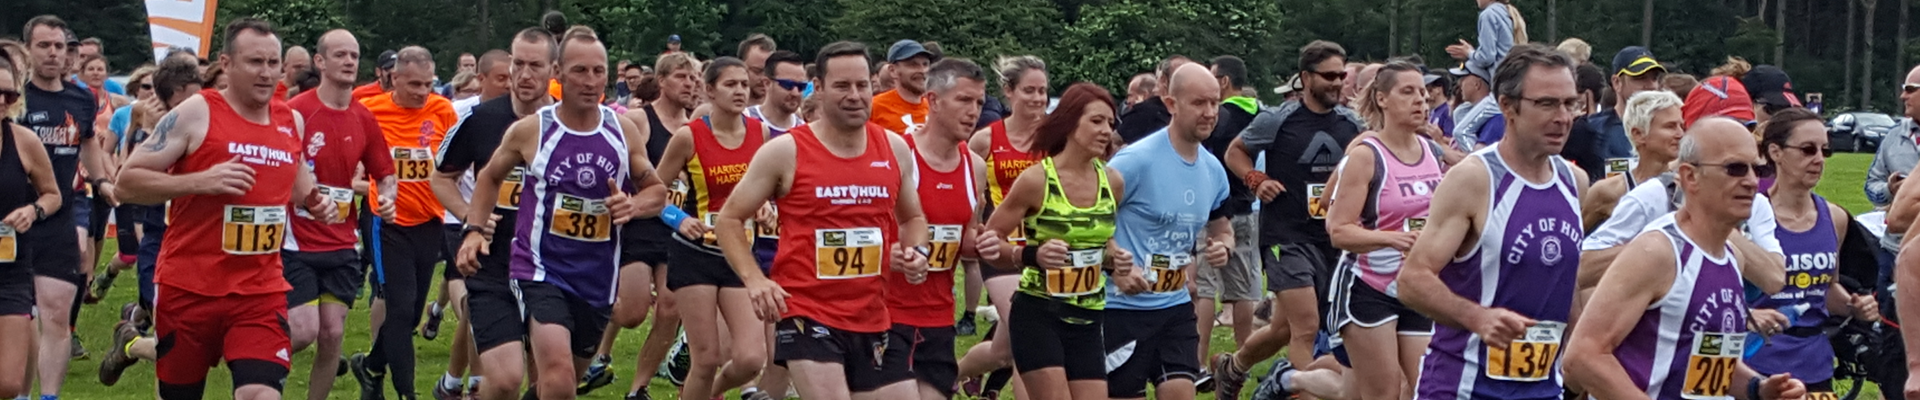 Dalby Conquer the Forest Half Marathon & 10k 2019